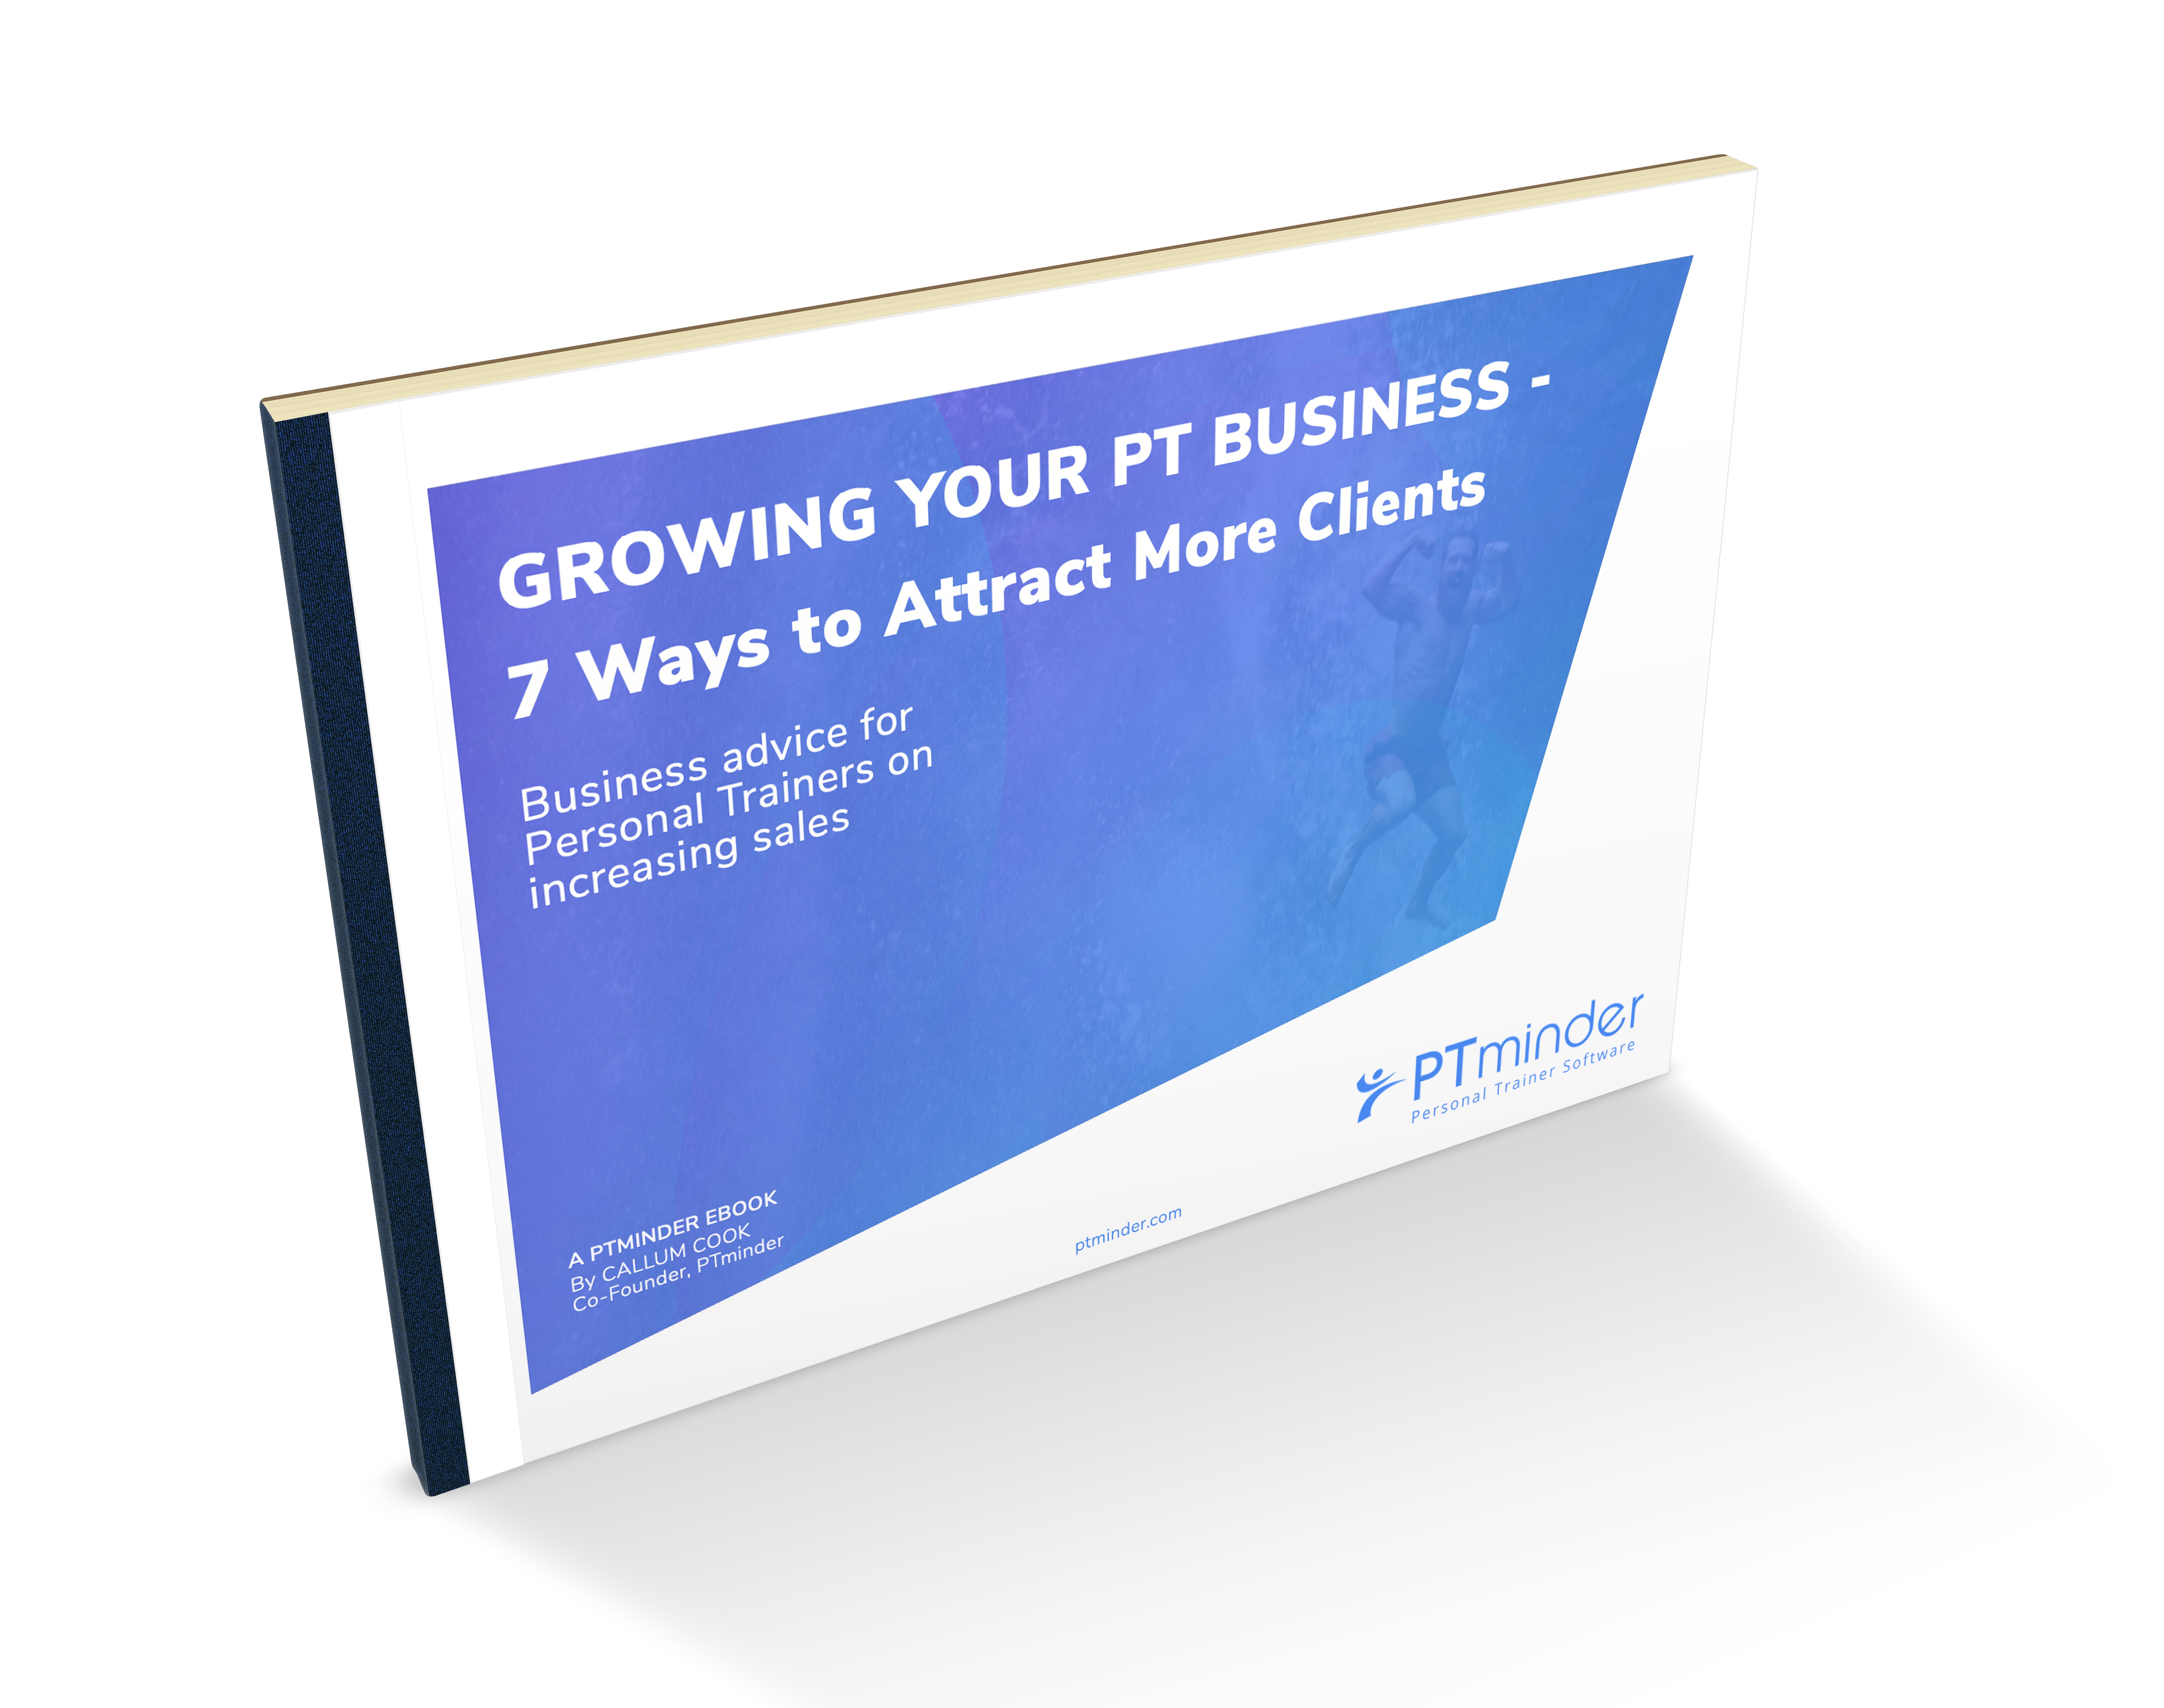 Growing your pt business cover 2